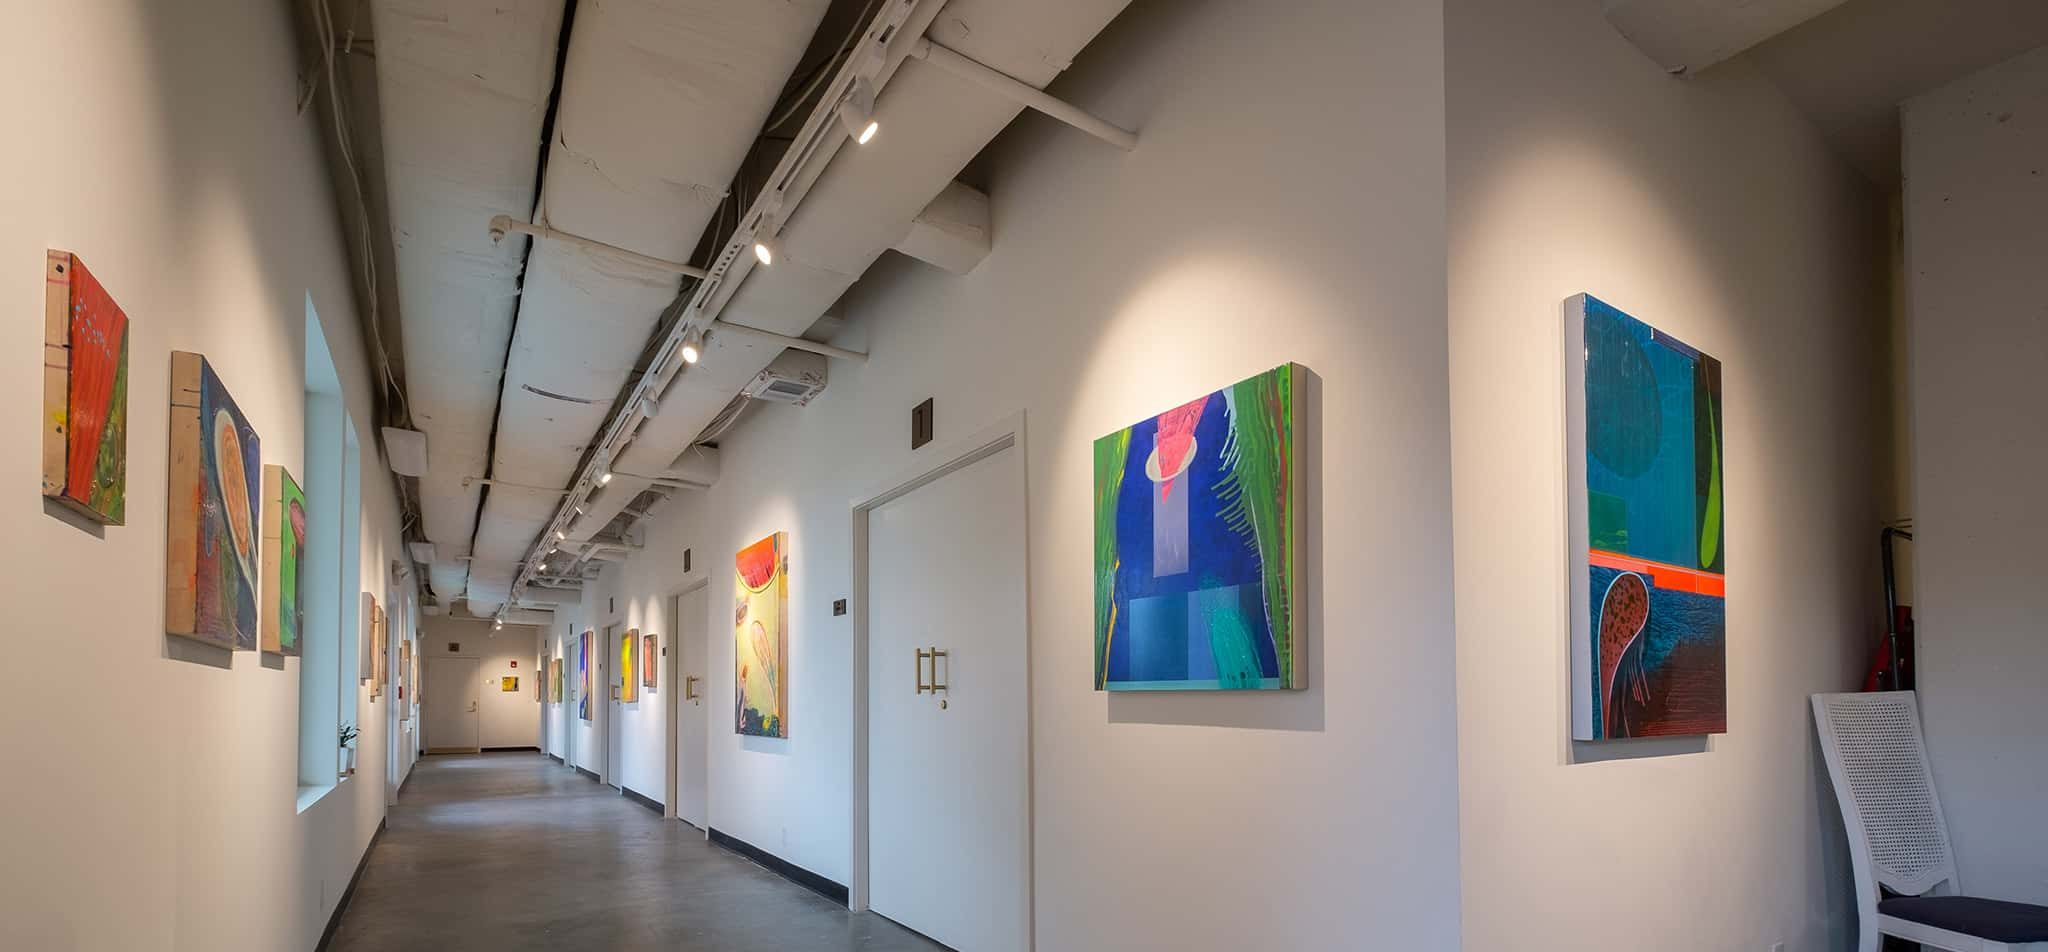 Hallway filled with paintings at Portico Gallery and Studios